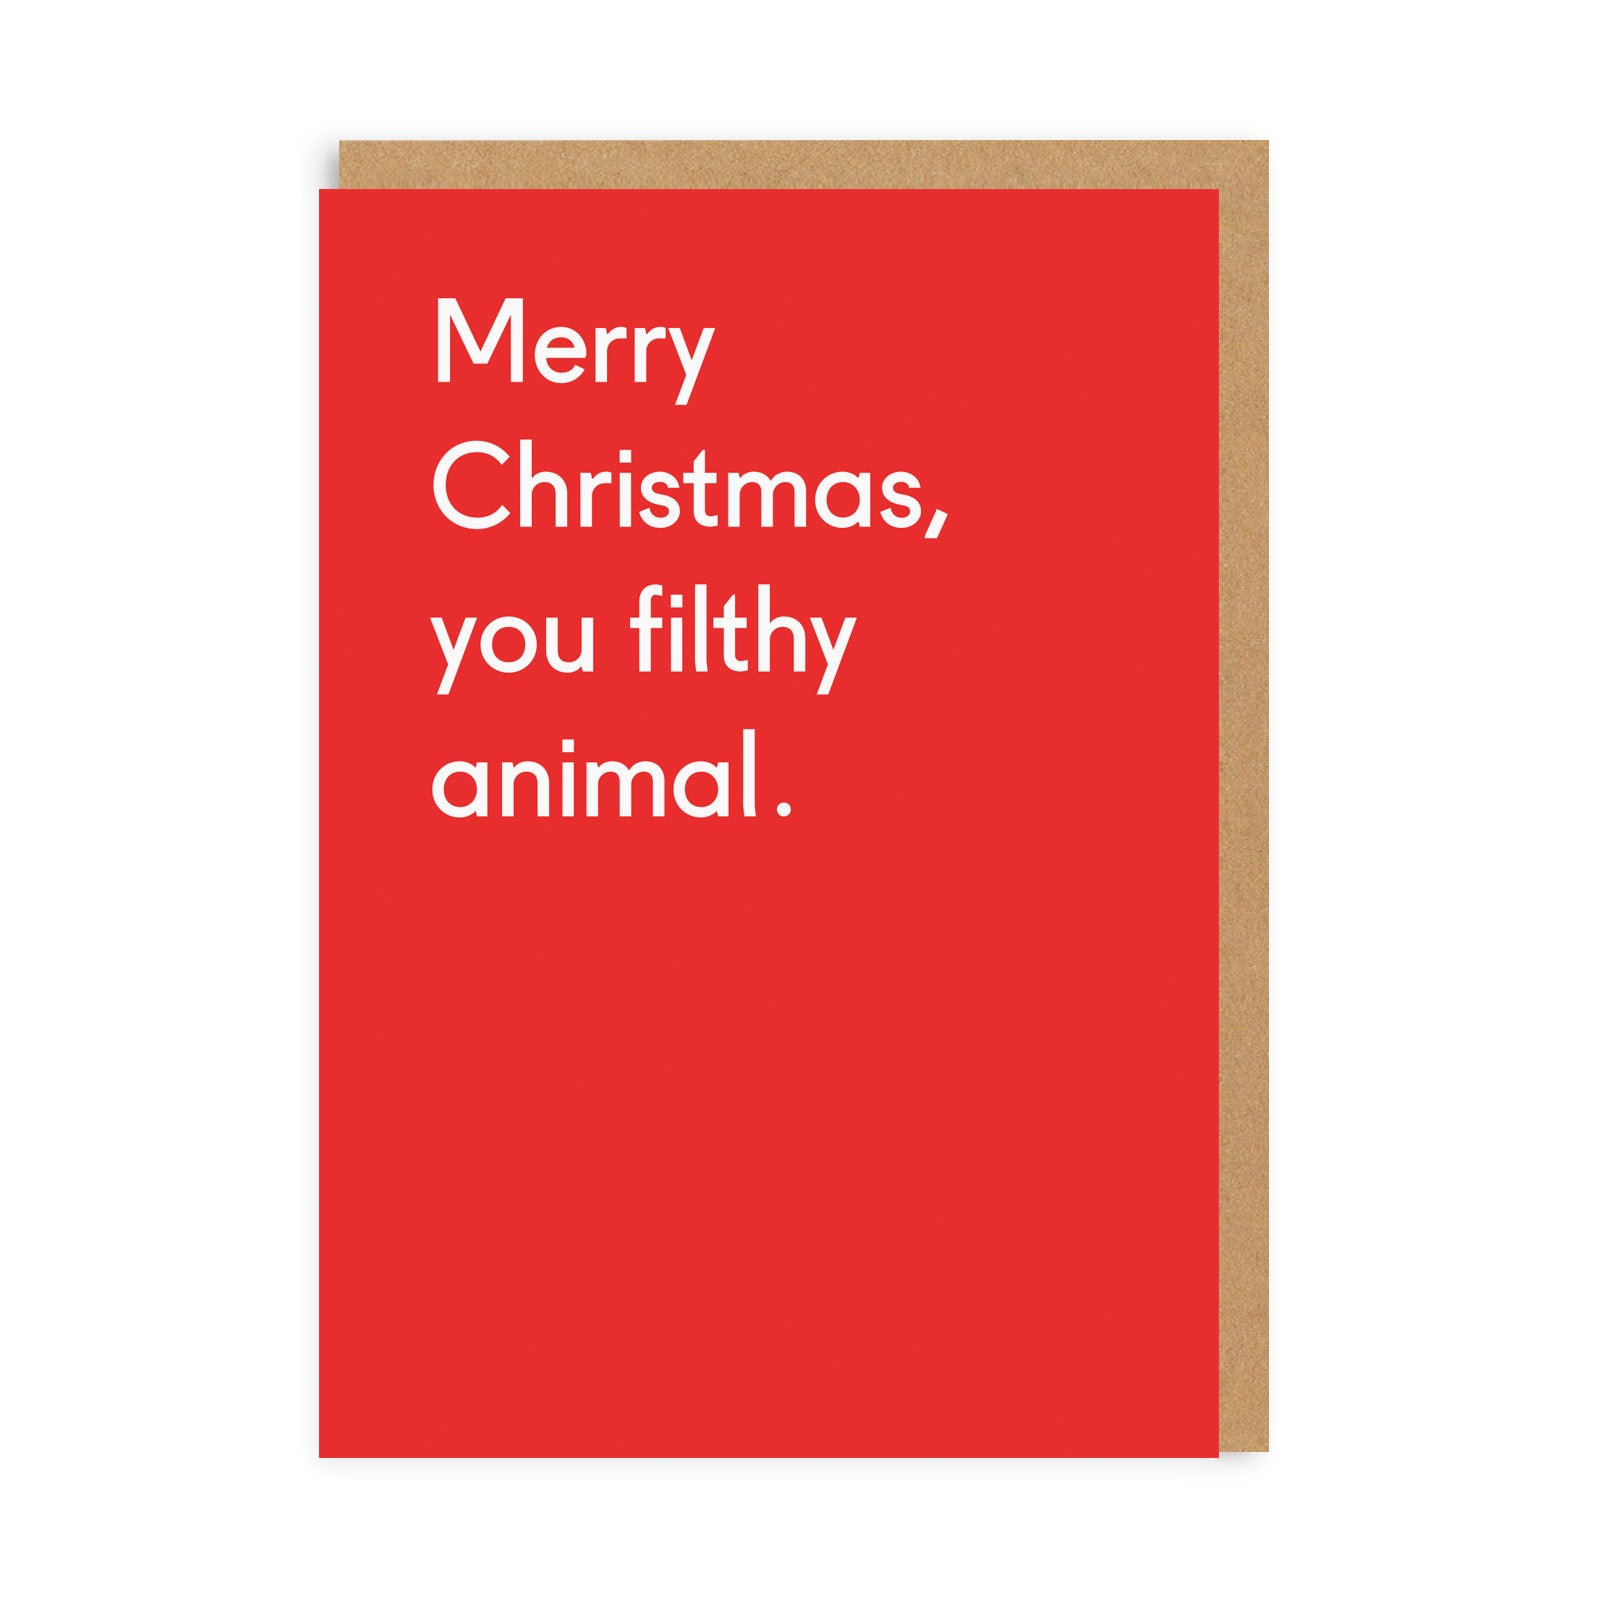 Merry Christmas You Filthy Animal Greeting Card